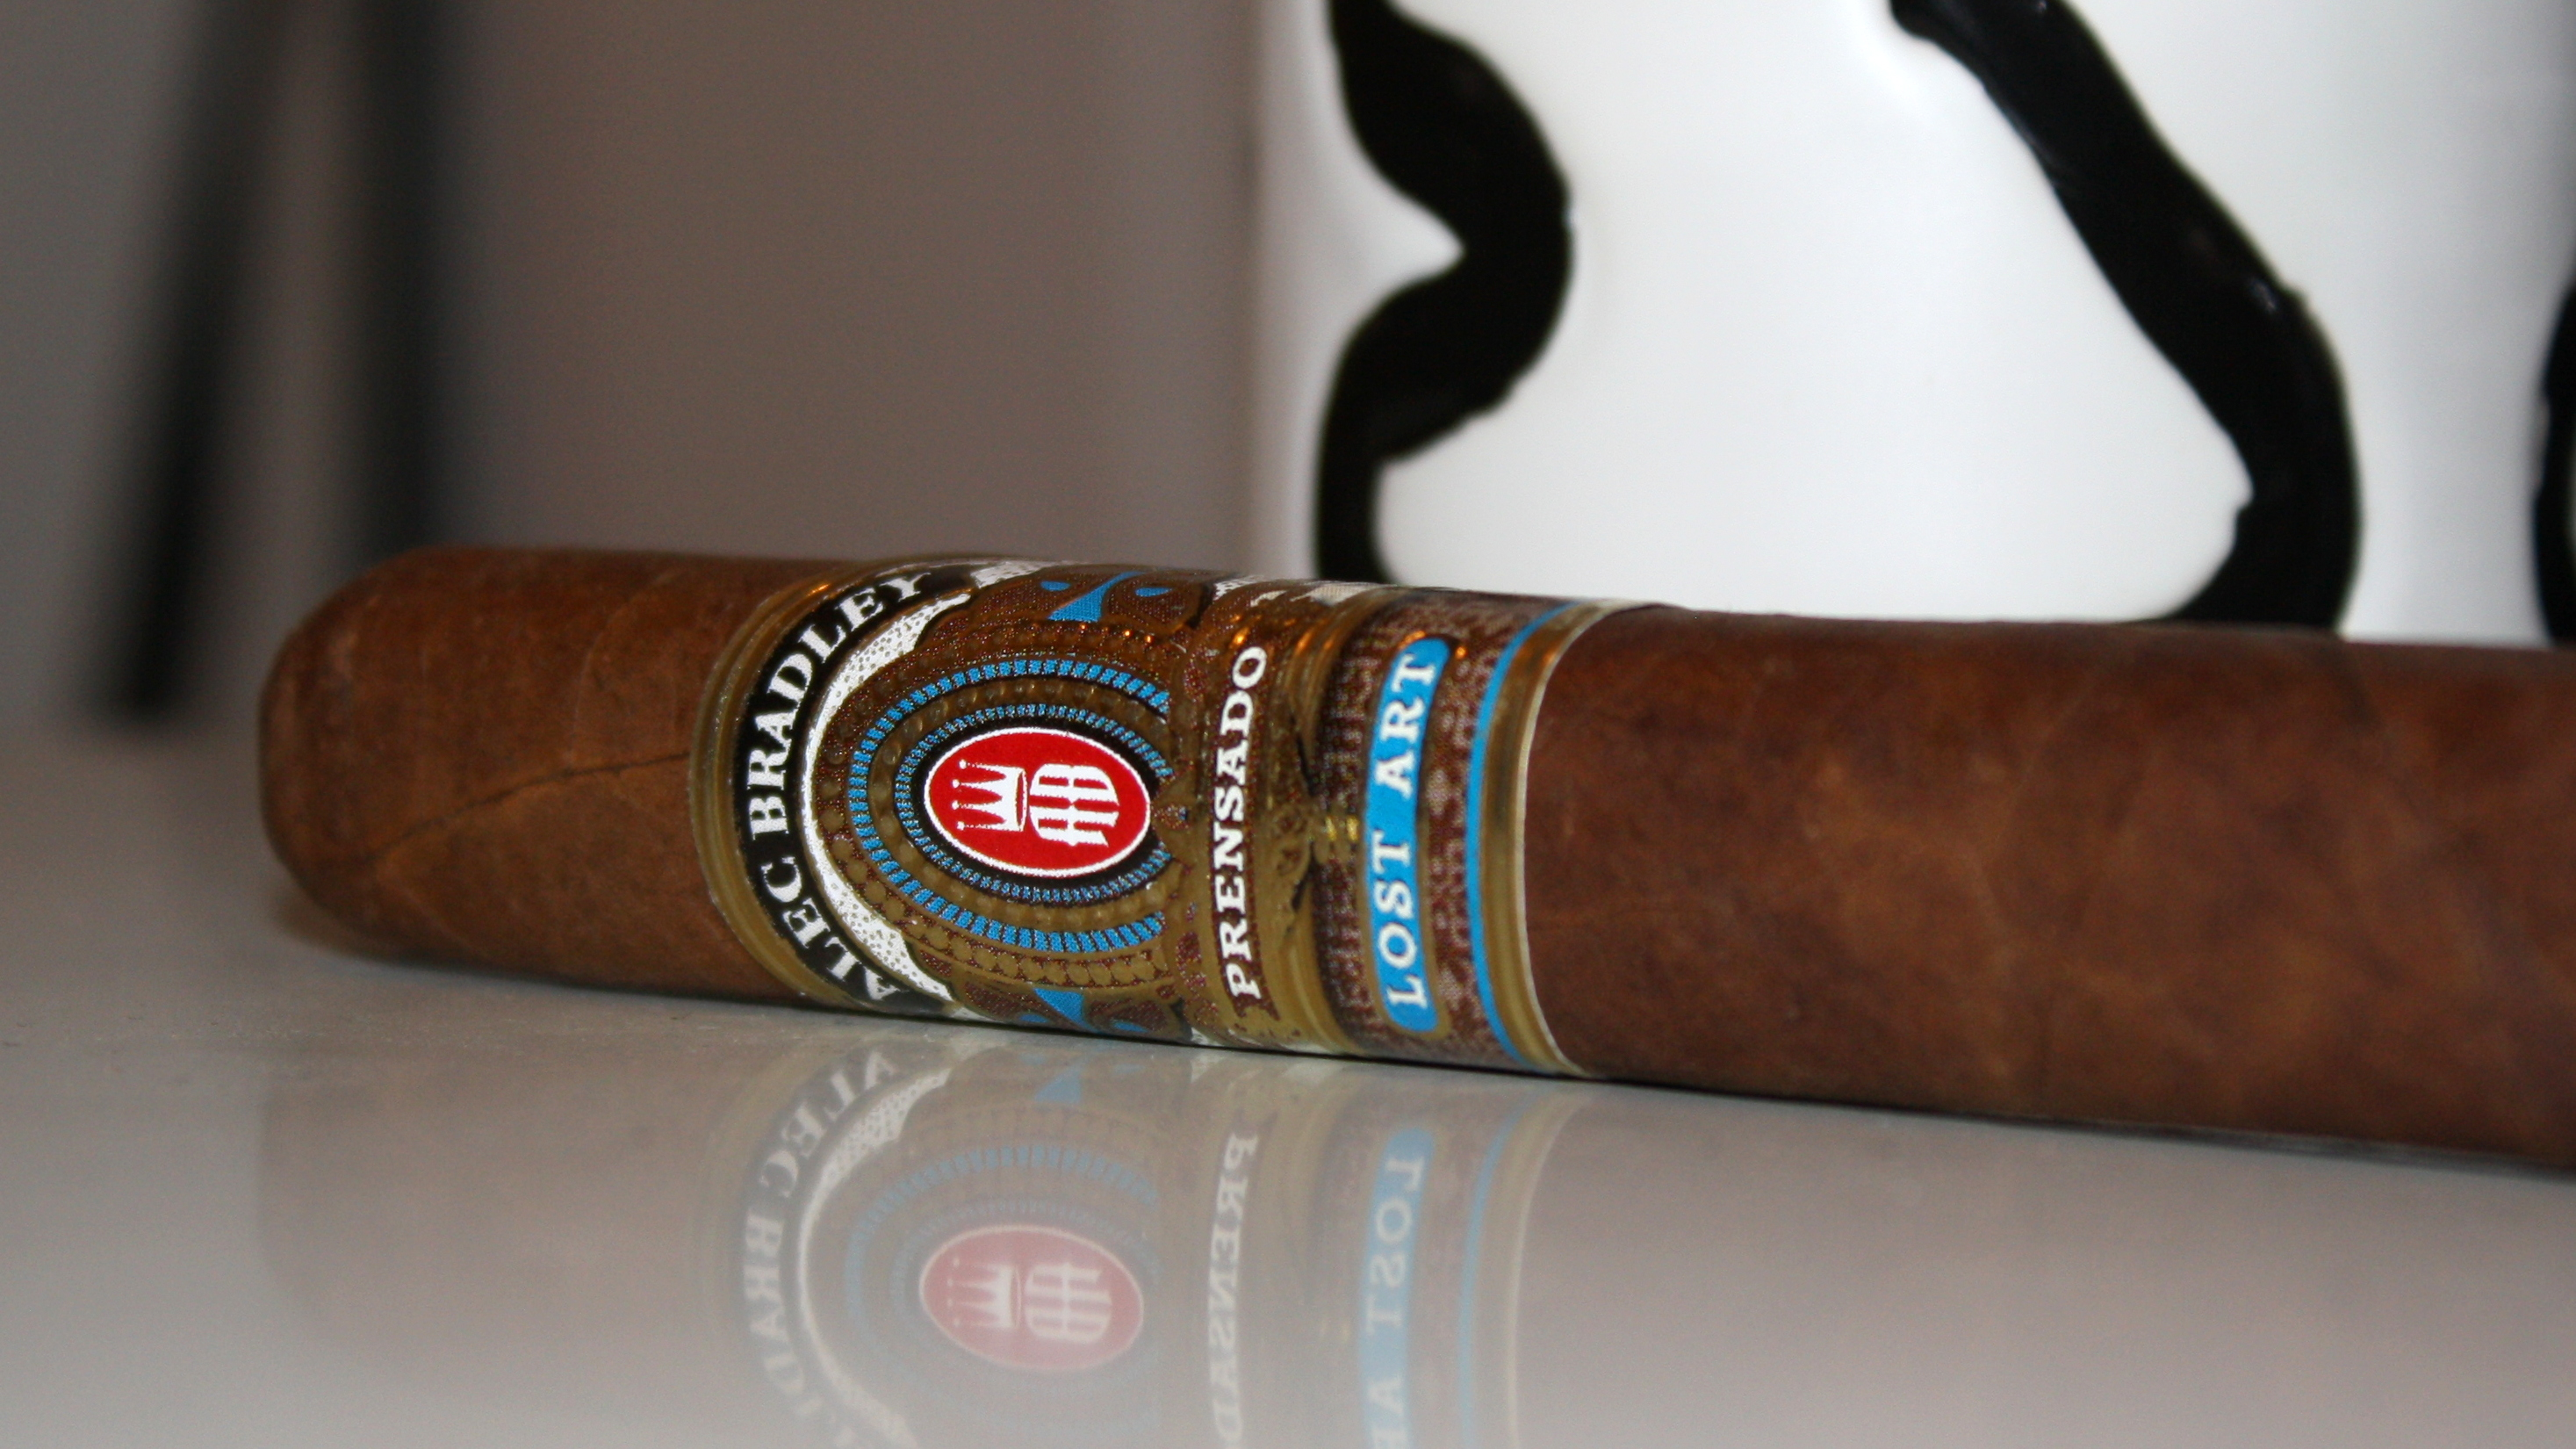 alec bradley prensado lost art review